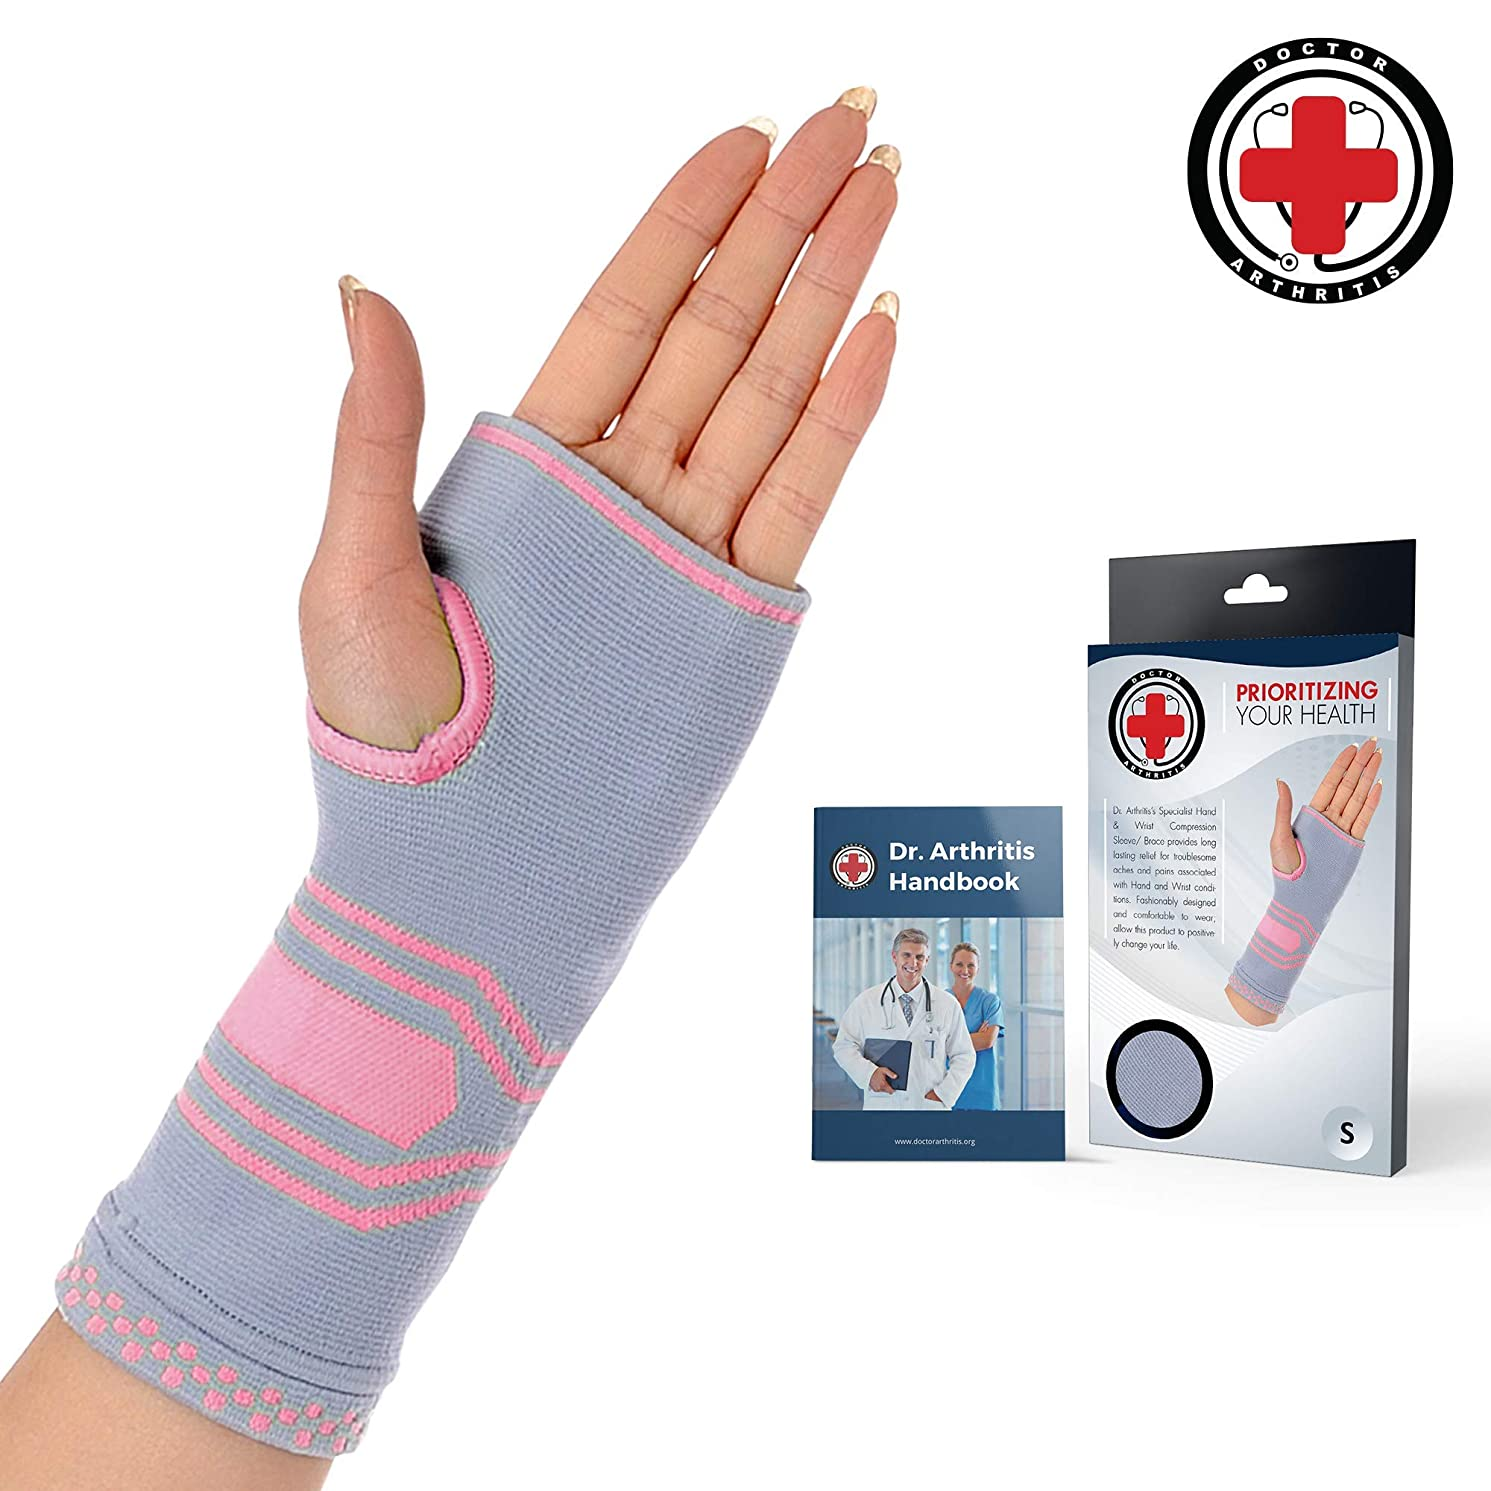 Doctor Developed Wrist & Hand Compression Sleeve/Support/Brace & Doctor Written Handbook - Palm Protector with Gel Pad, Optimum Comfort for Arthritis, Carpal Tunnel, RSI & More (Pink/Grey, Medium)